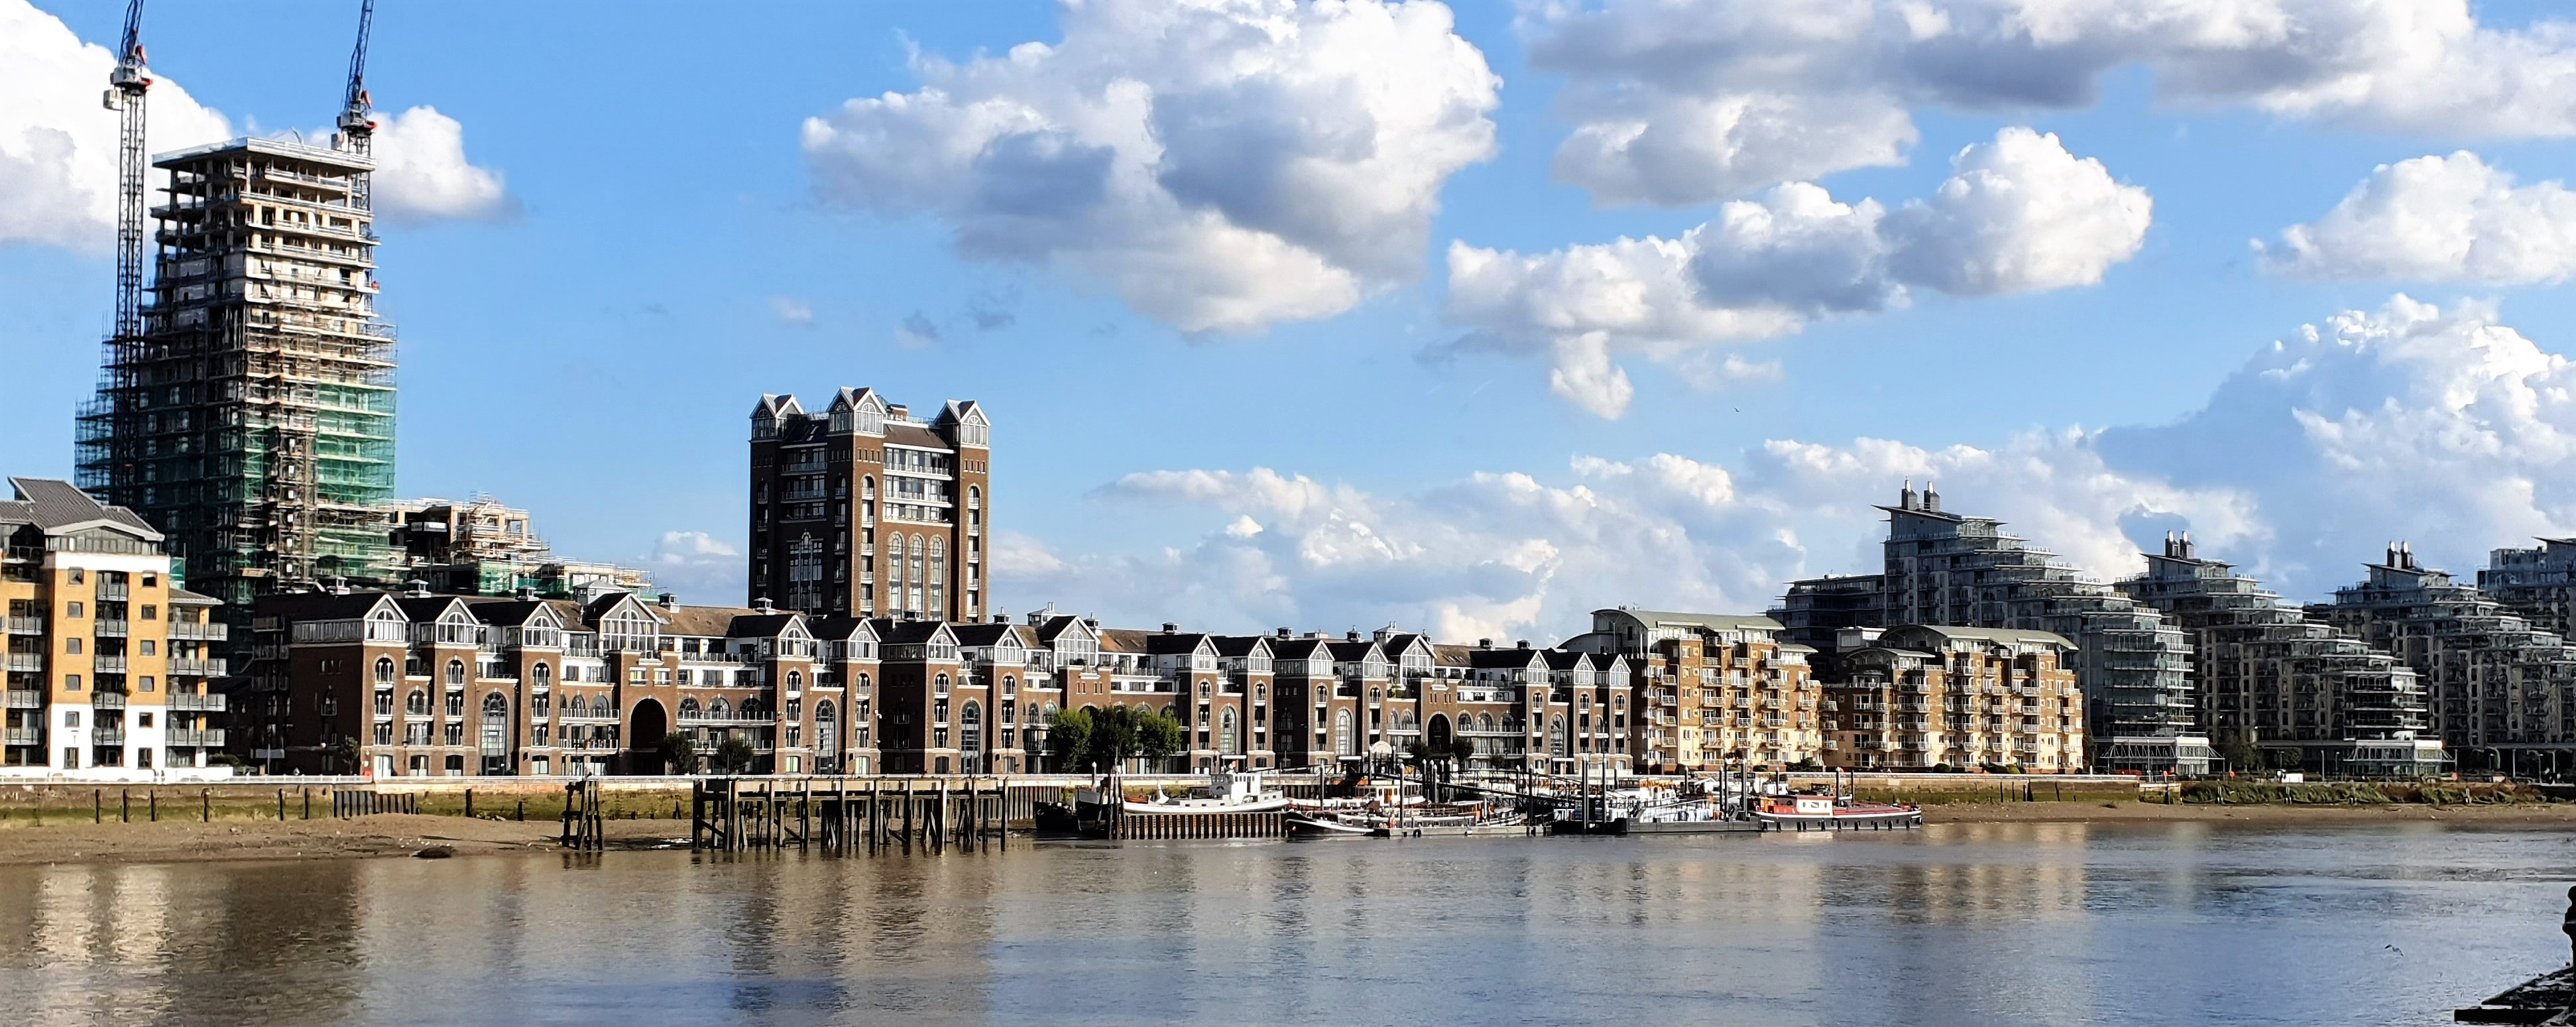 South side of Thames from Imperial Gardens.